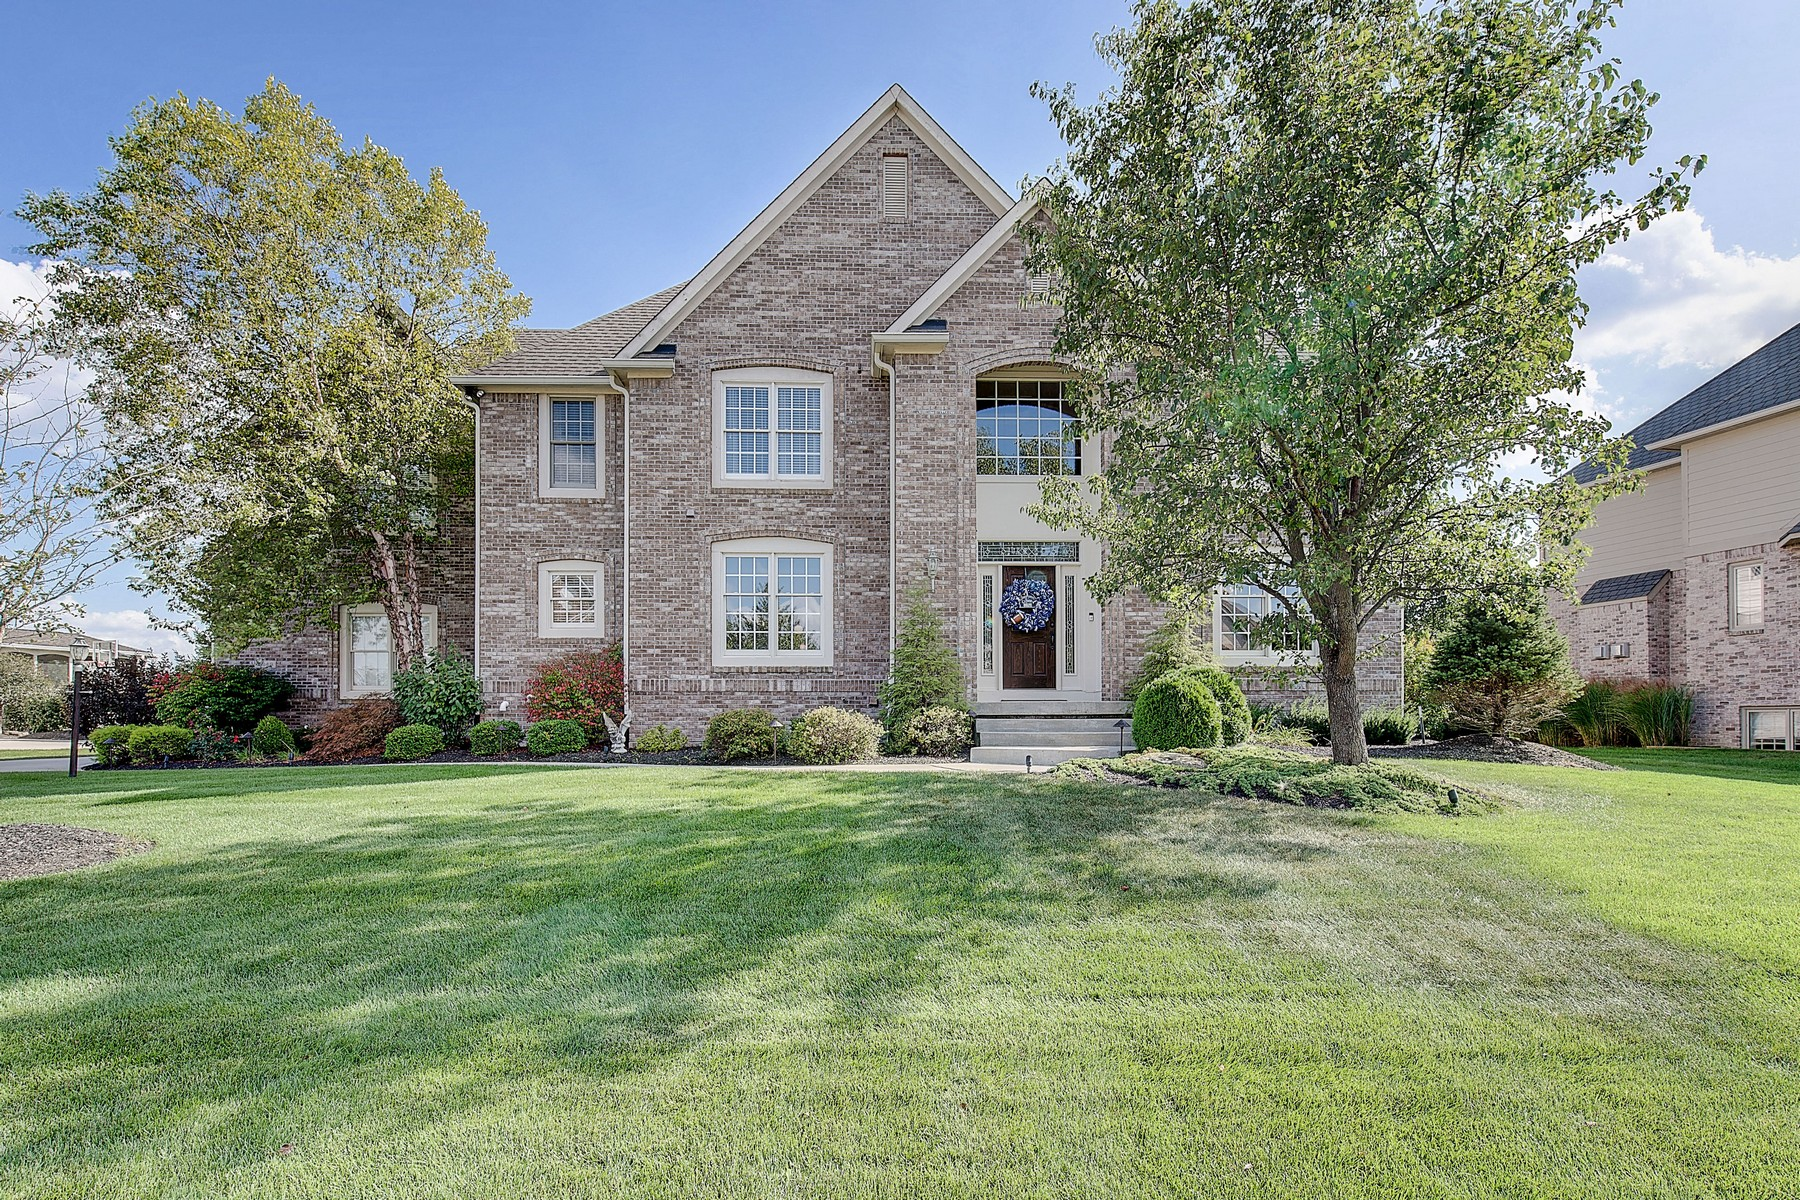 Outstanding Home in Village of Towne Pointe 2249 President Street Carmel, Indiana 46032 United States